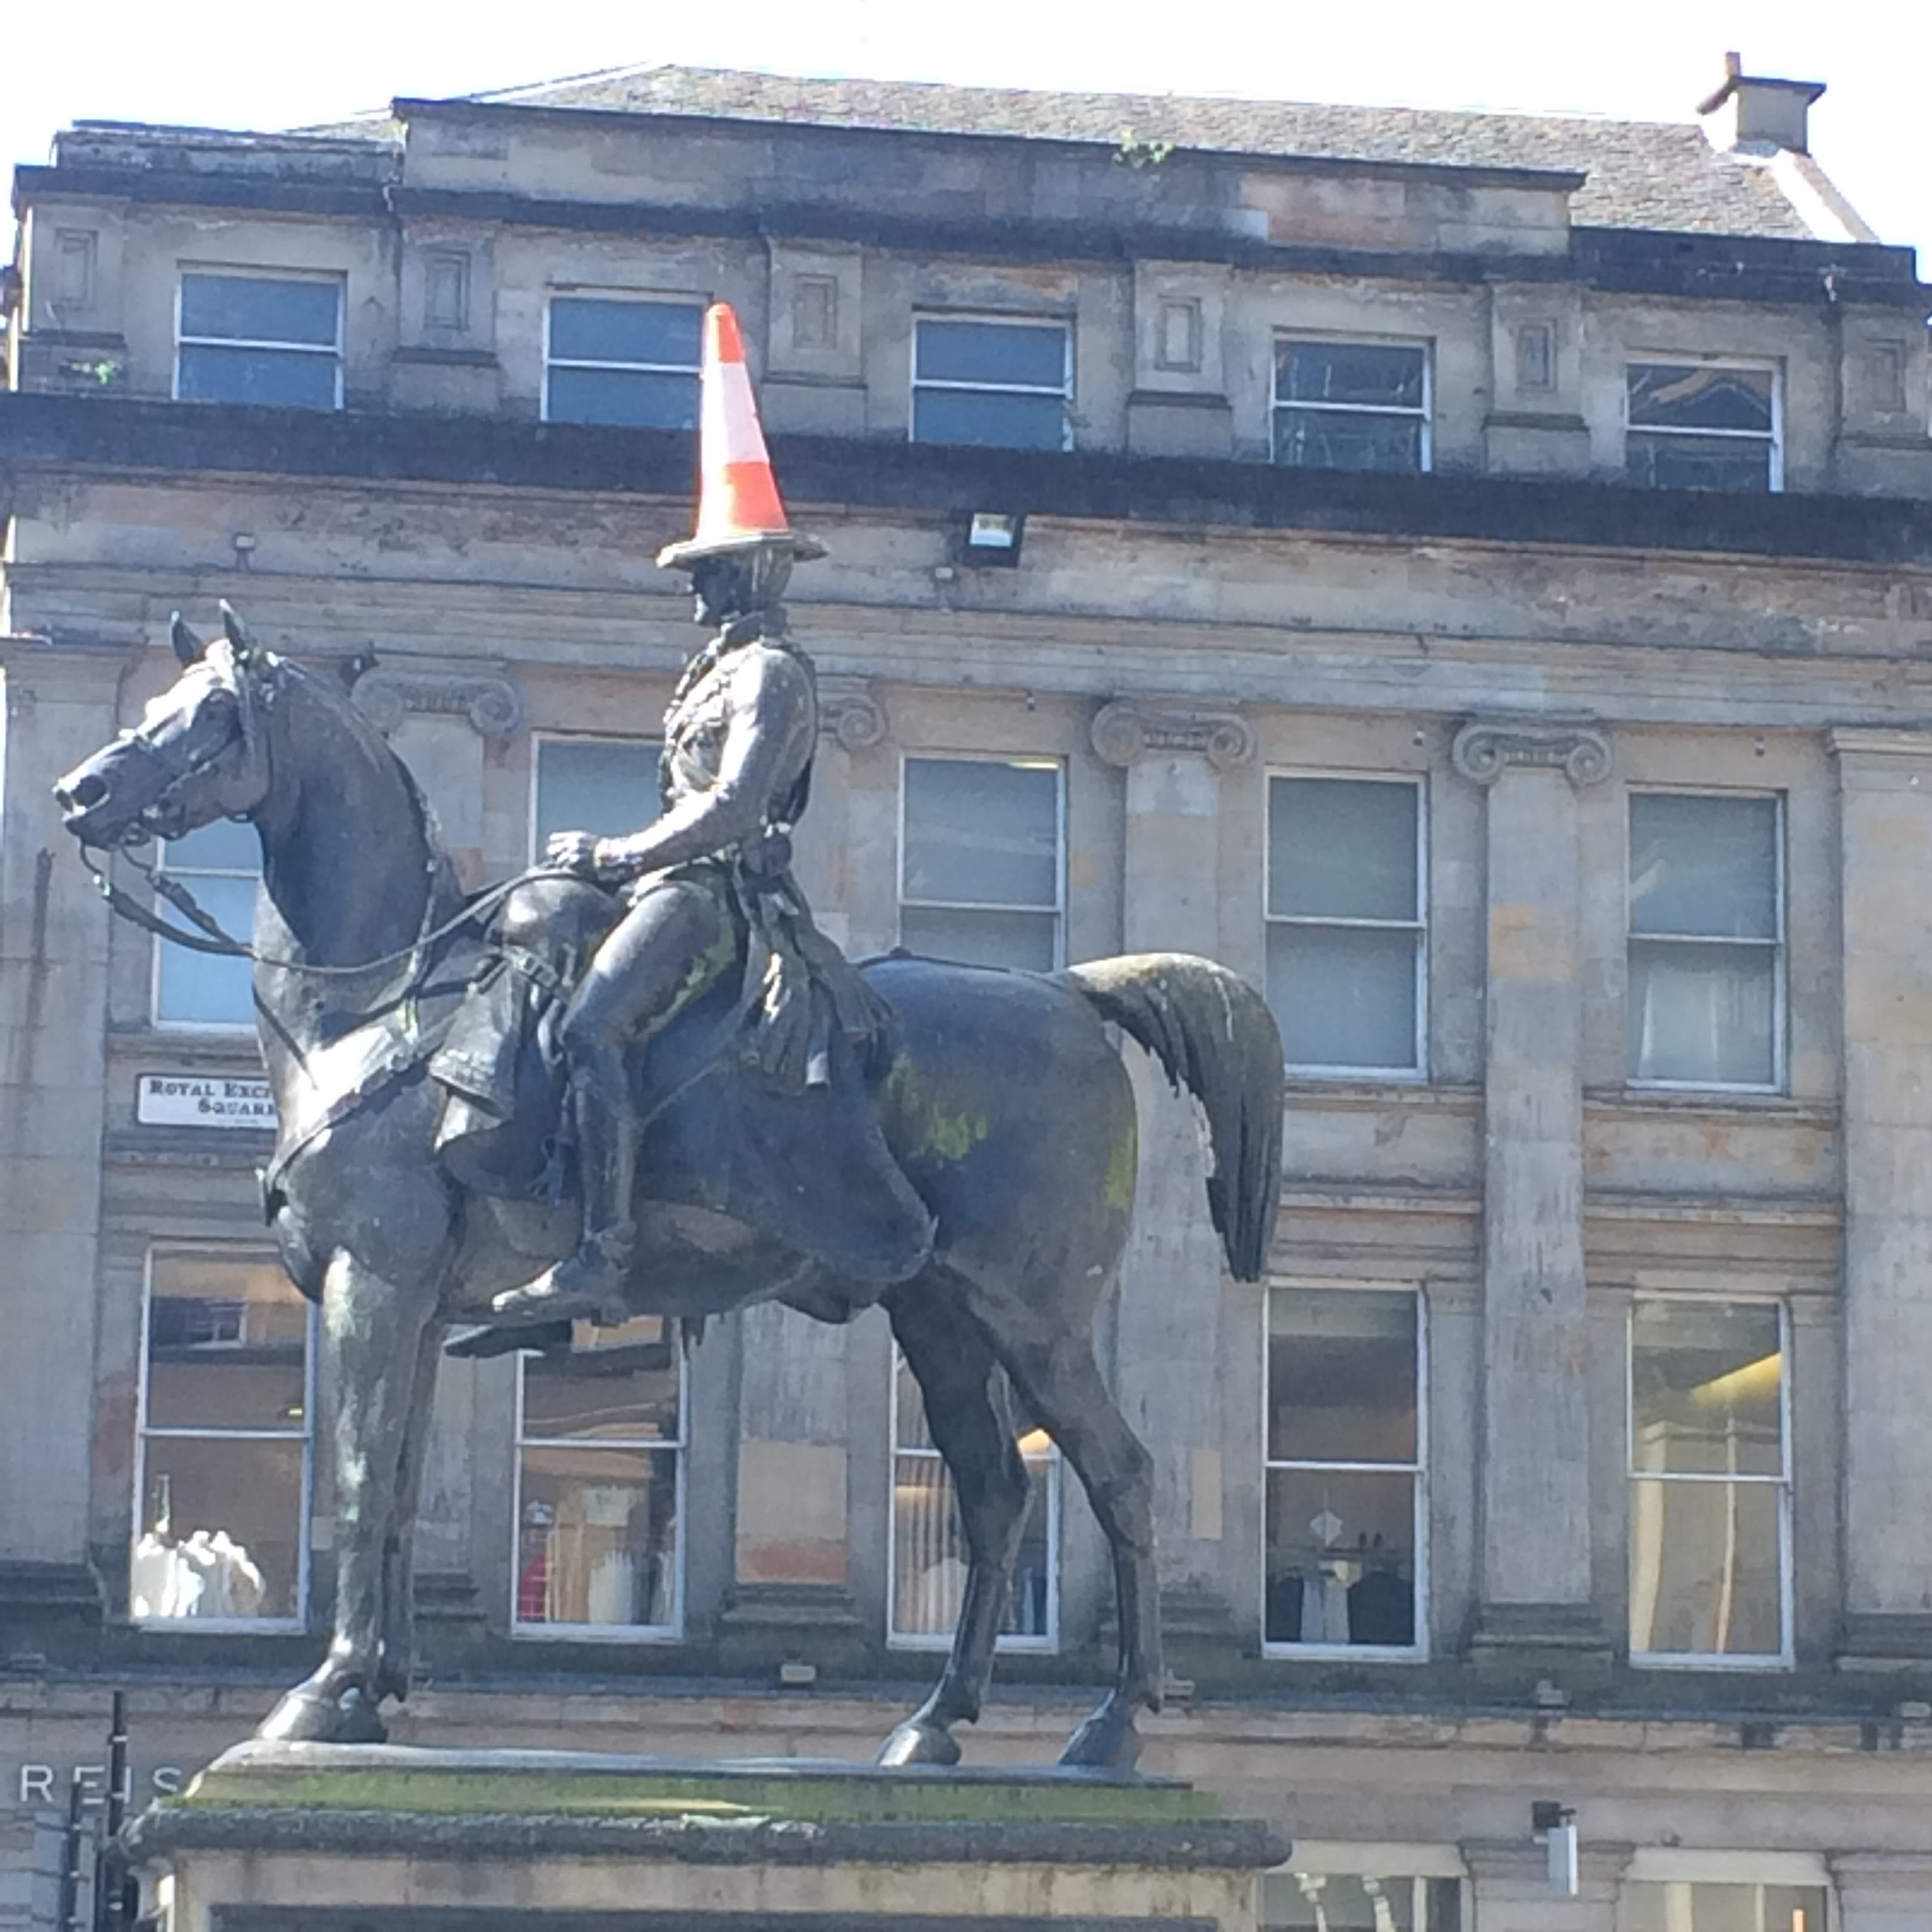 the Duke of Wellington statue stands tall with an iconic orange traffic cone on his head - once a prank, now a staple of Glasgow, pure Glaswegian humour